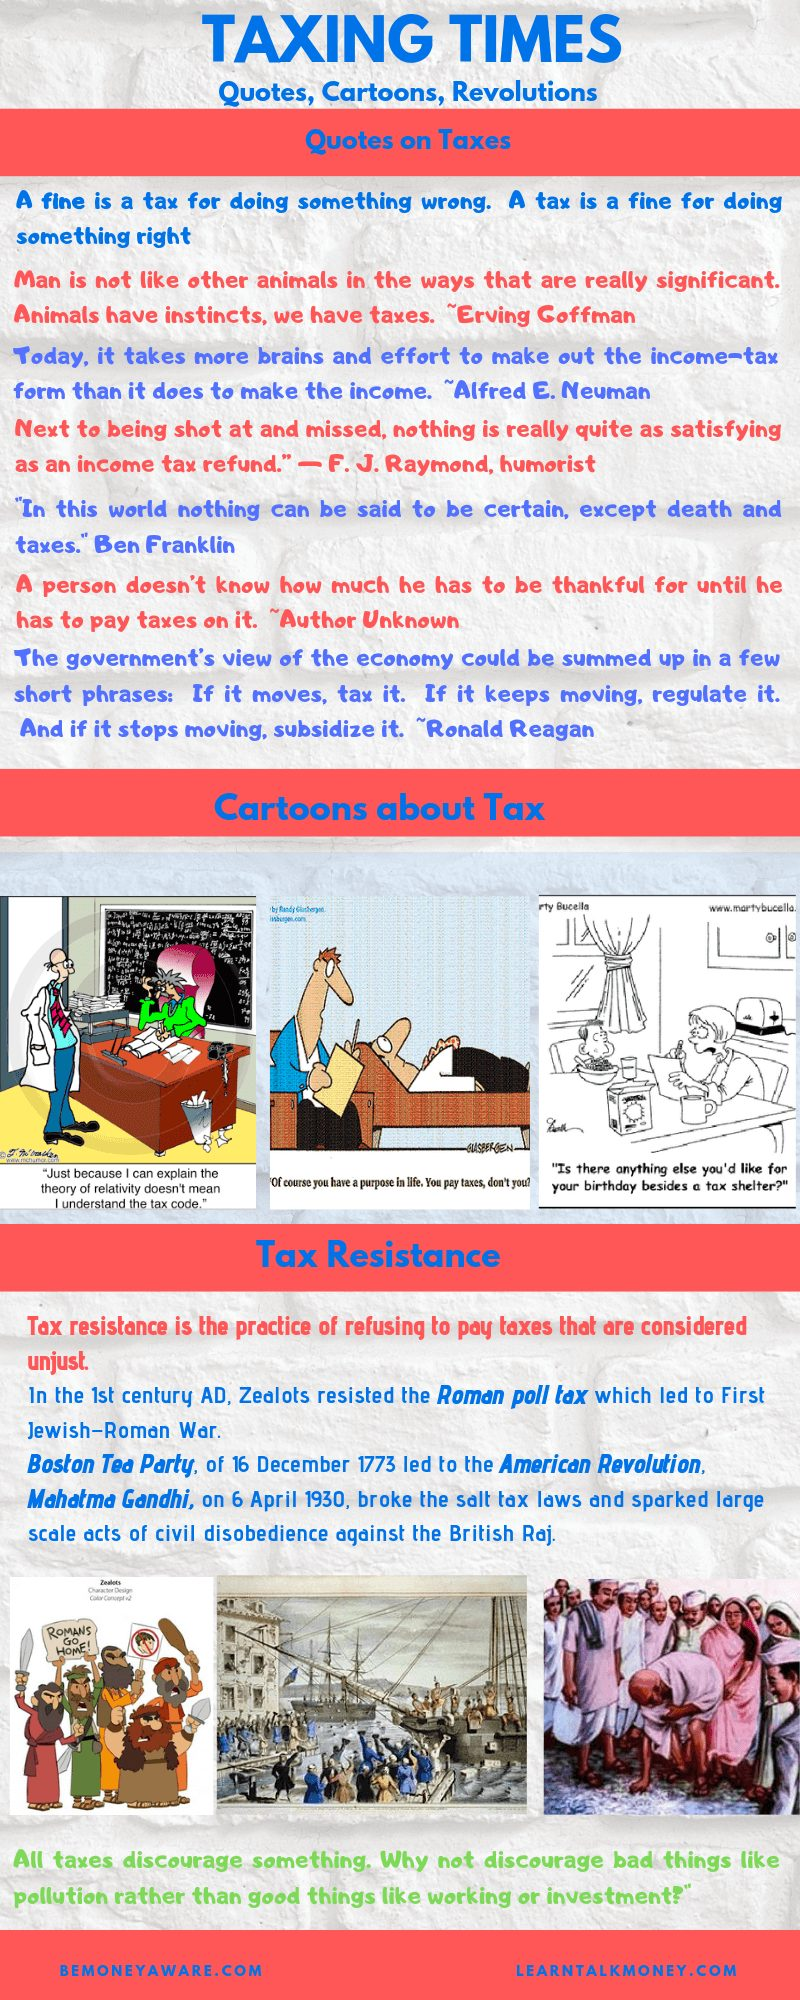 Quotes, Cartoons, Revolutions due to Taxes